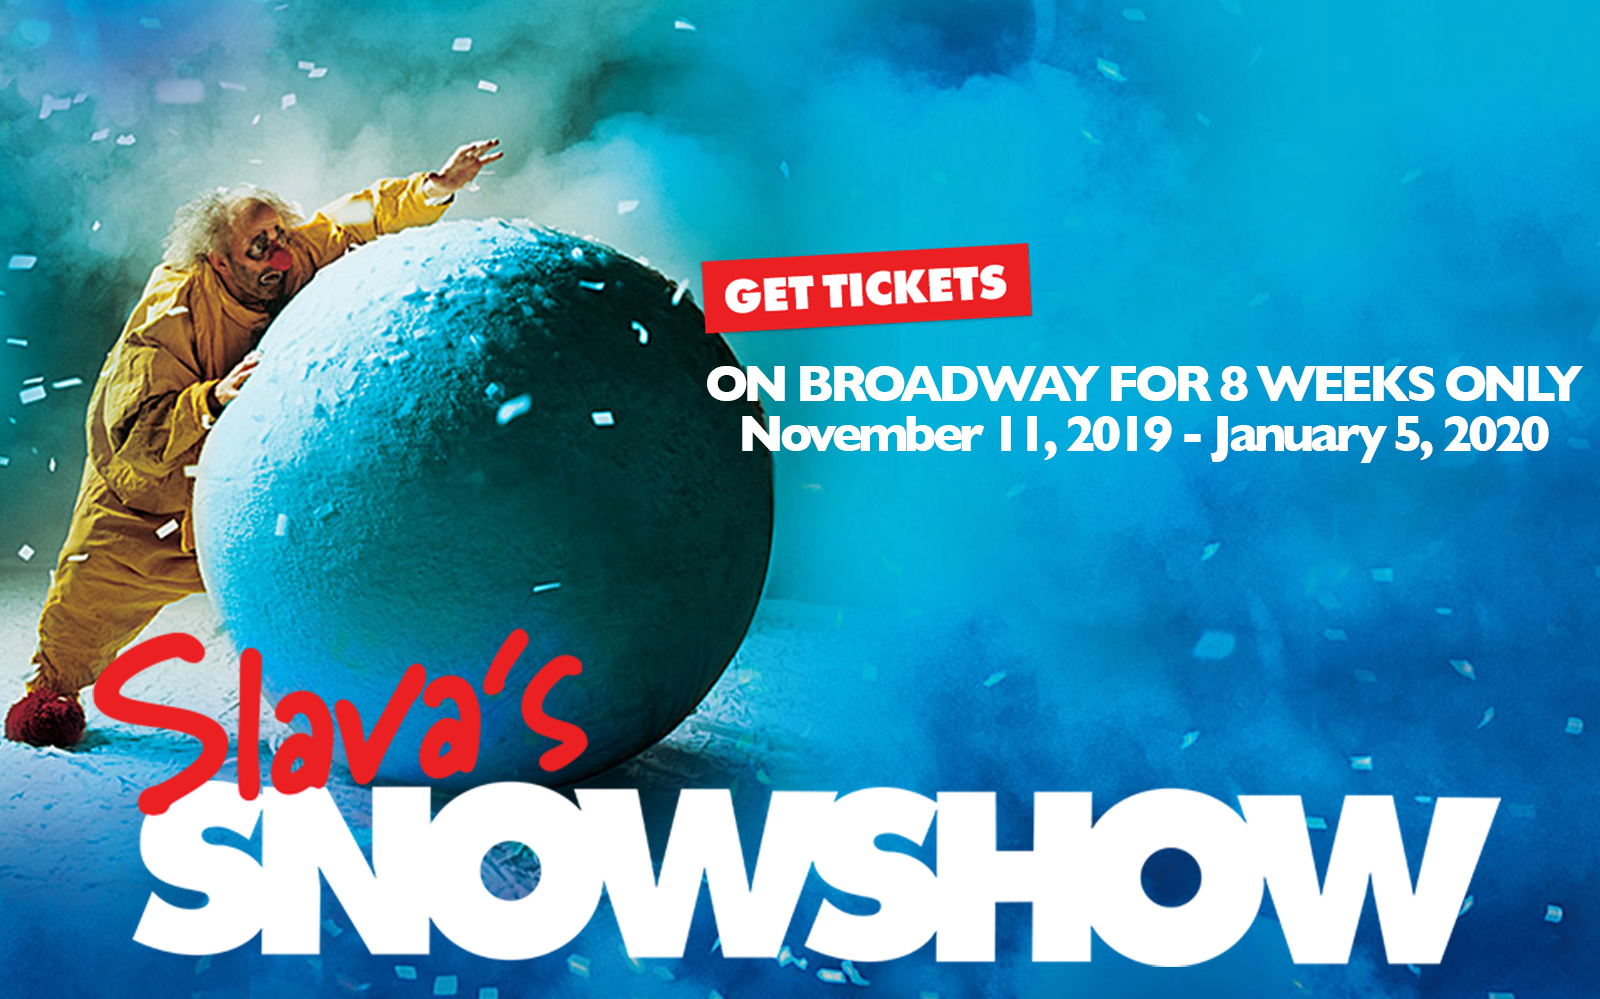 Christmas Eve Broadway Shows 2020 Best Christmas Broadway Shows   Info, Tickets, Discounts, & More